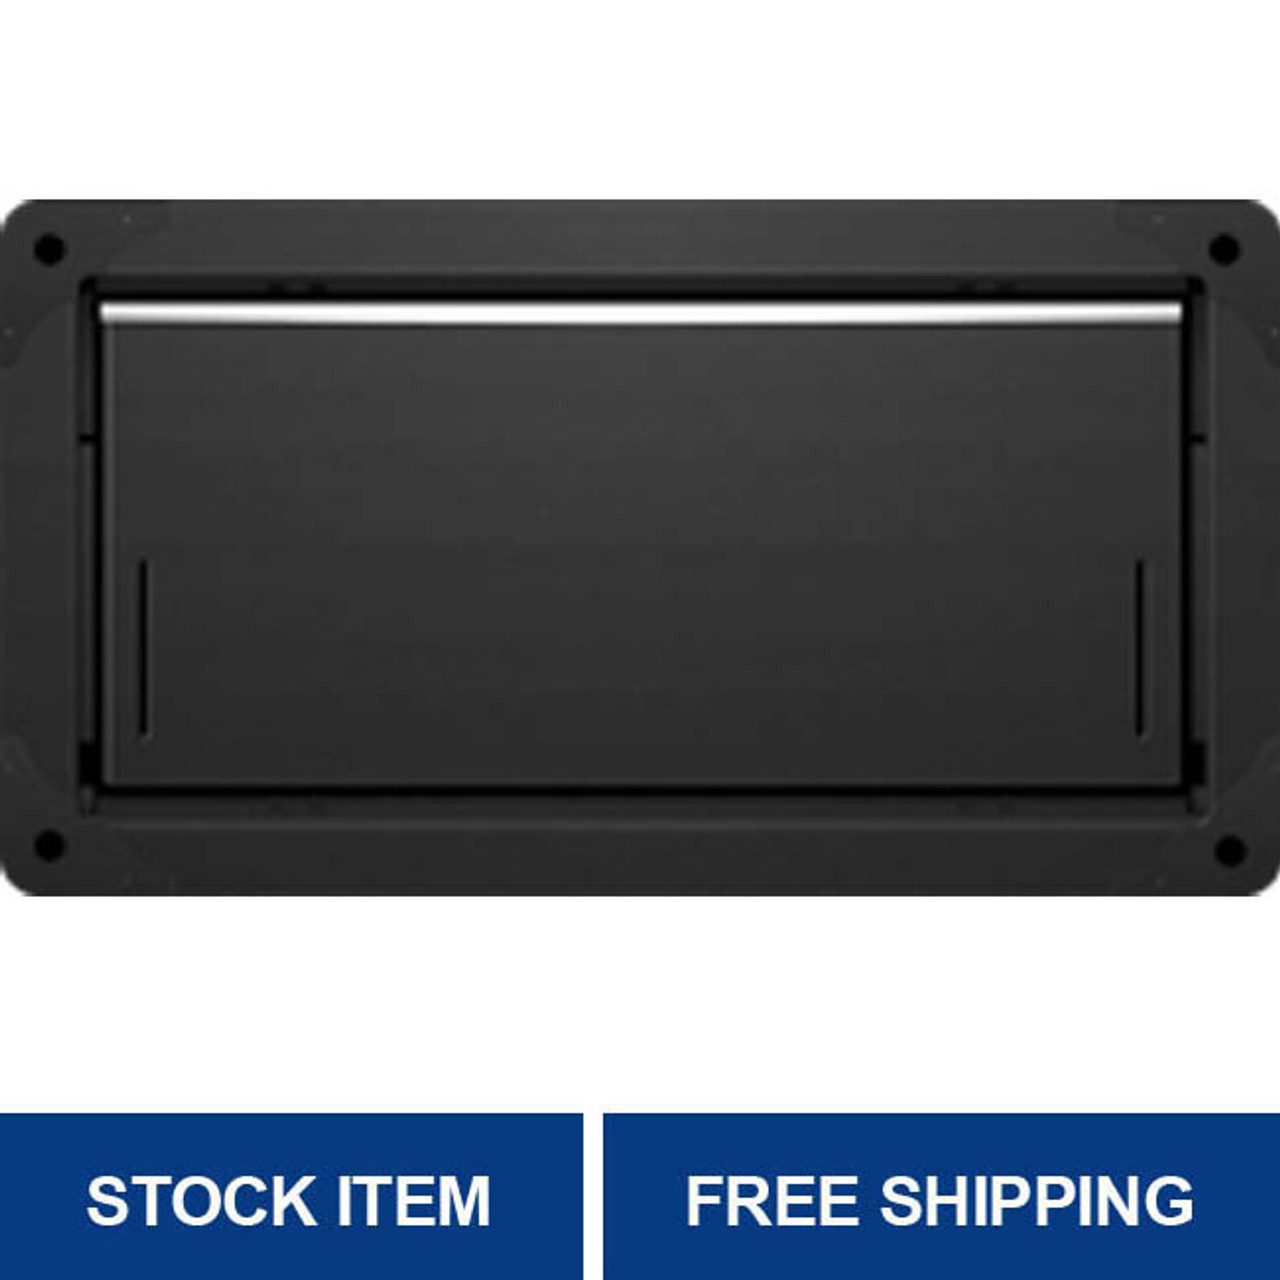 Smart Vent 1540-524 Black Overhead Garage Door Flood Vent